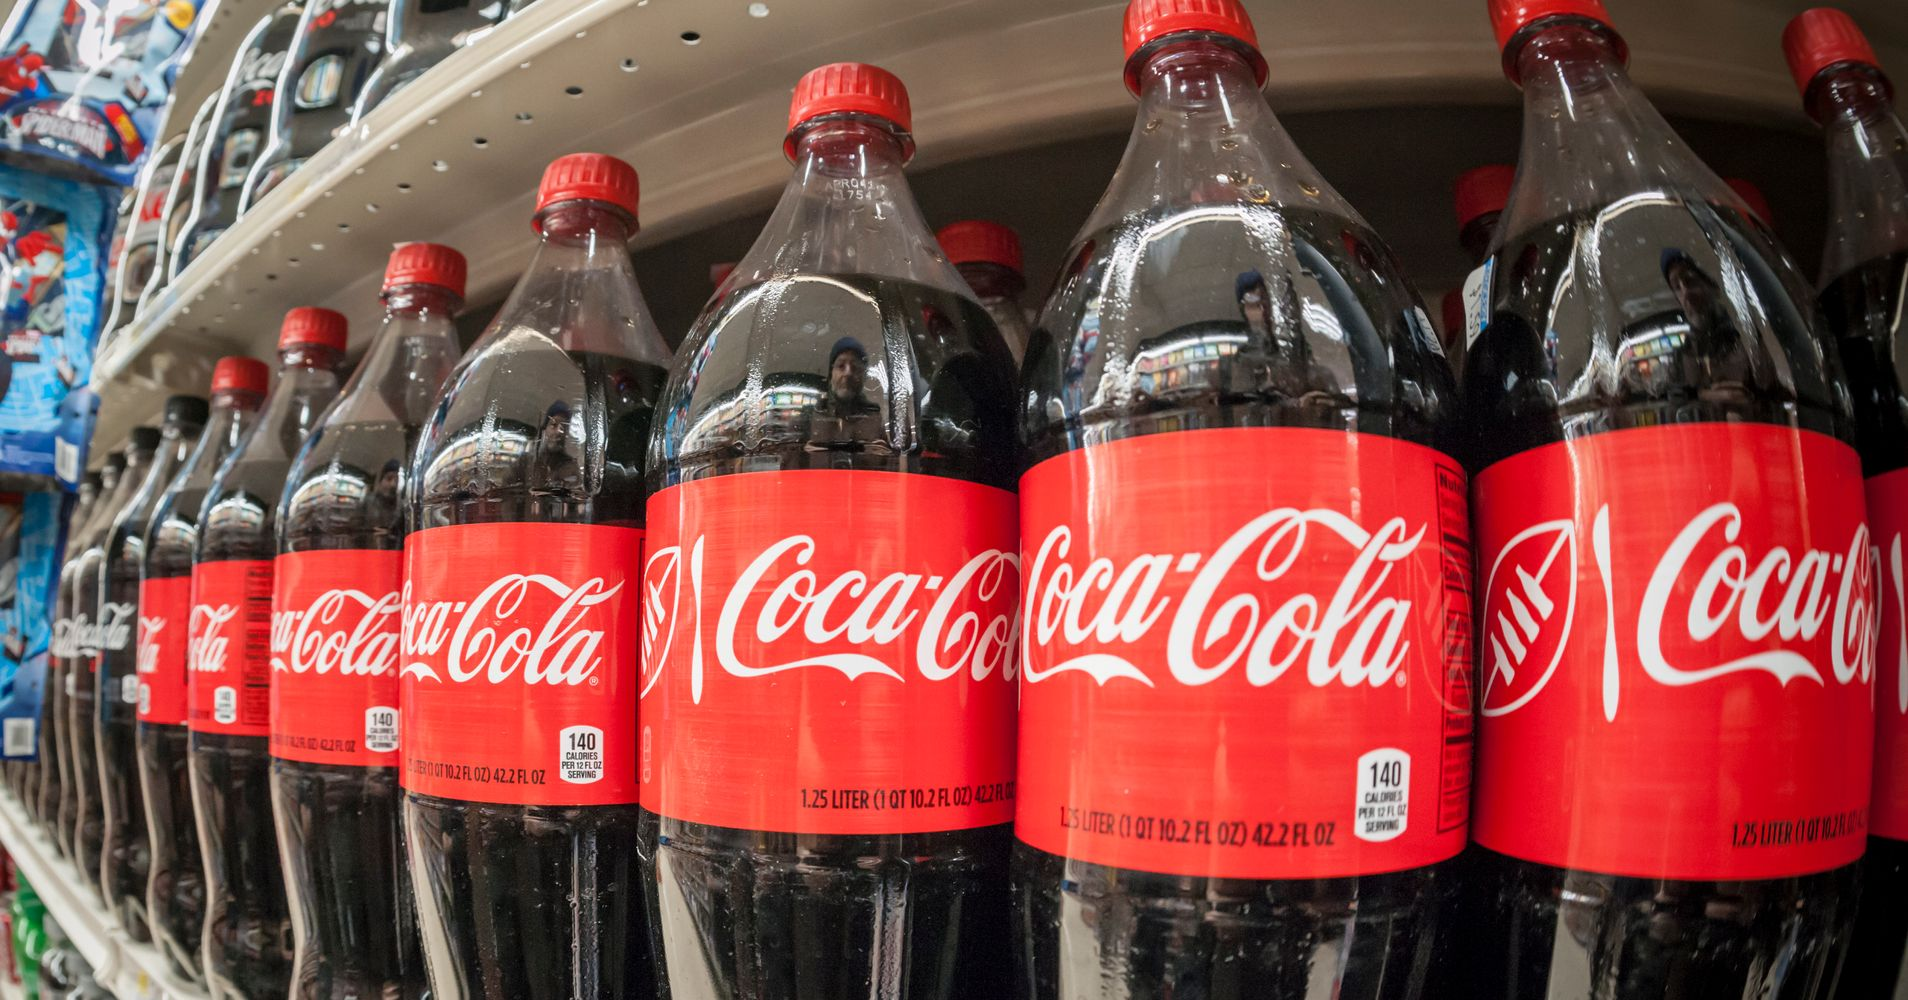 815 Pounds Of Cocaine Found At Coca Cola Plant In France